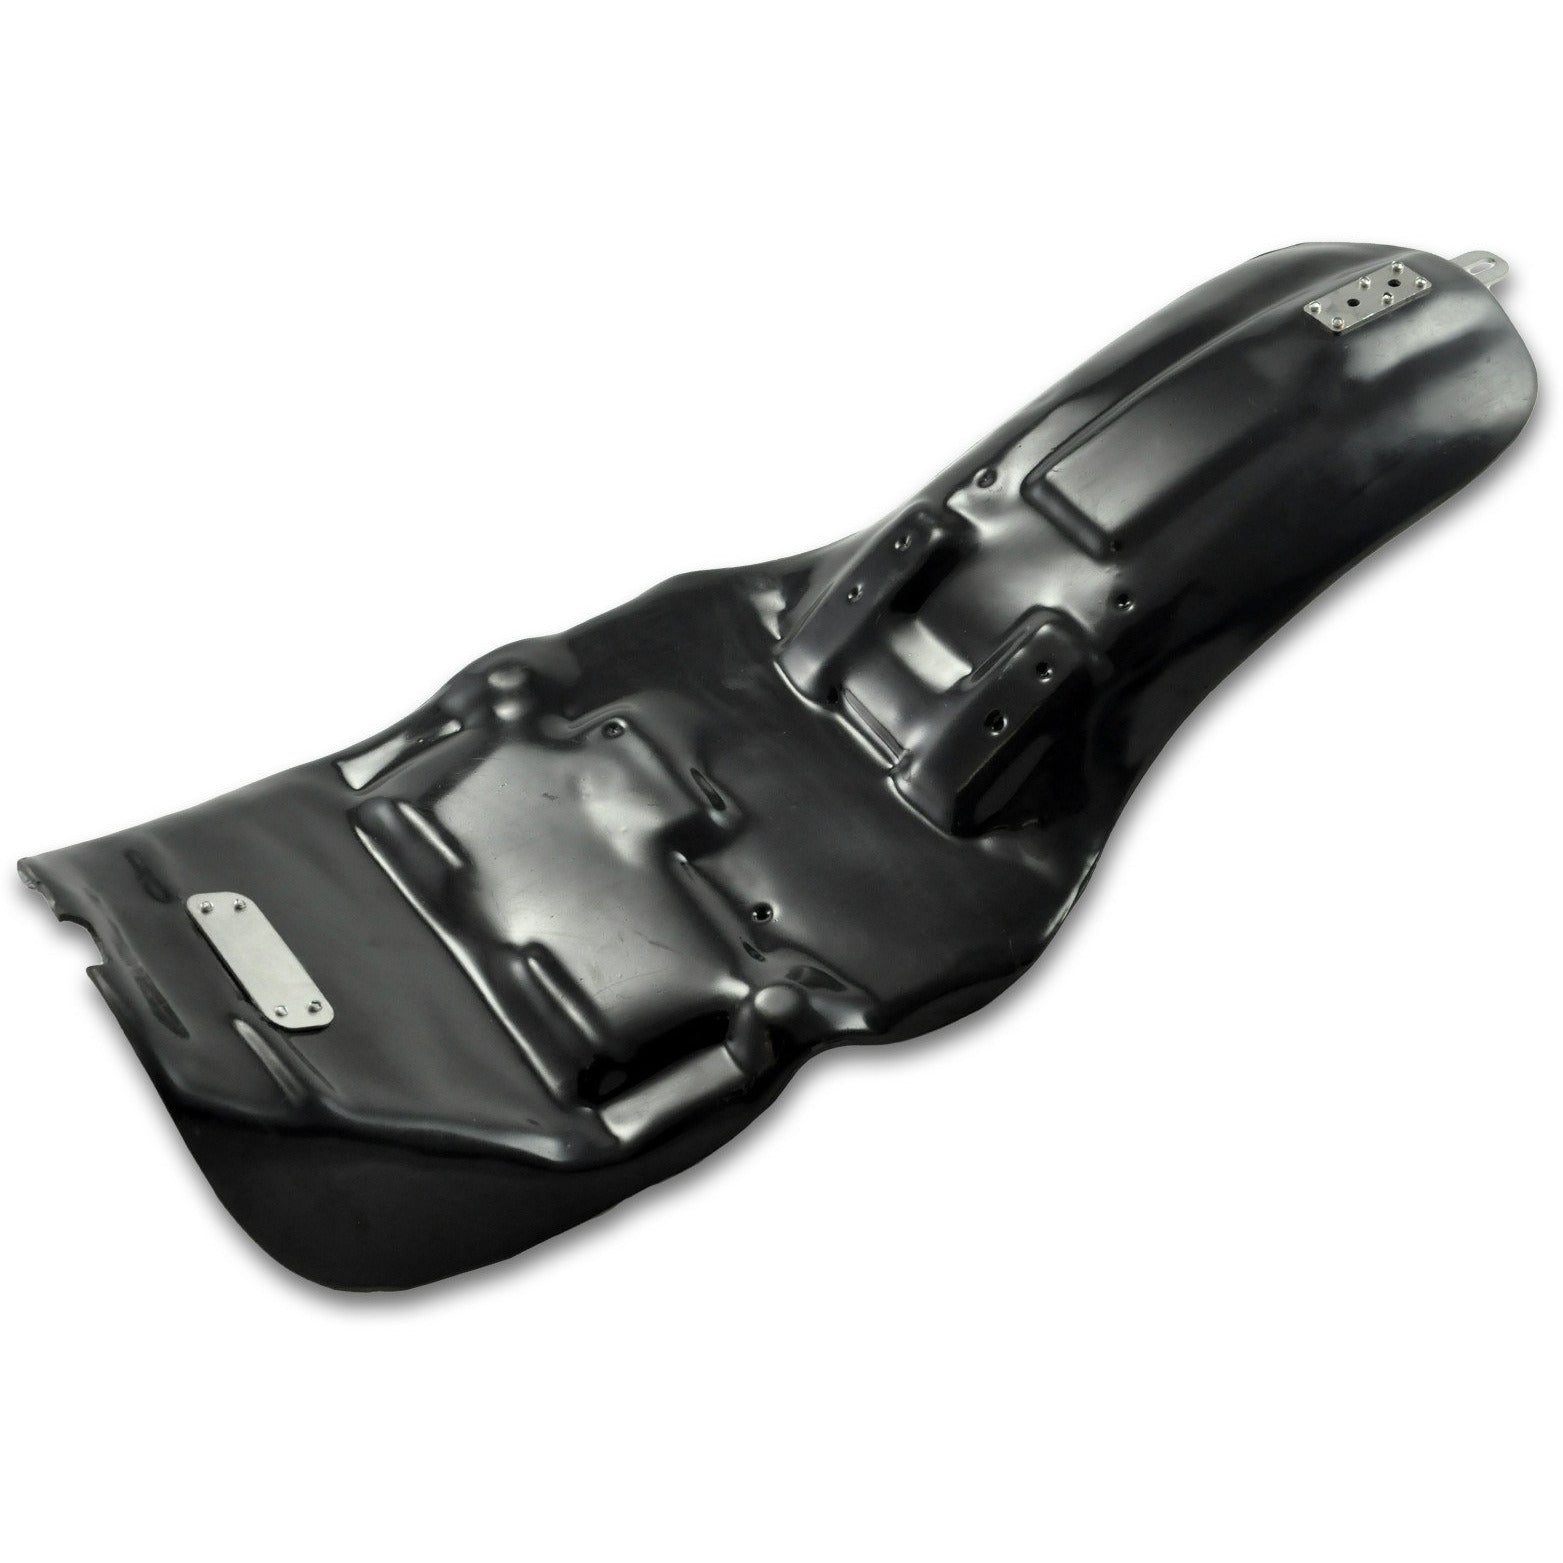 Bagger Brothers Seat Custom Pan Fits 2008-2016 Touring Models with Extended Tank